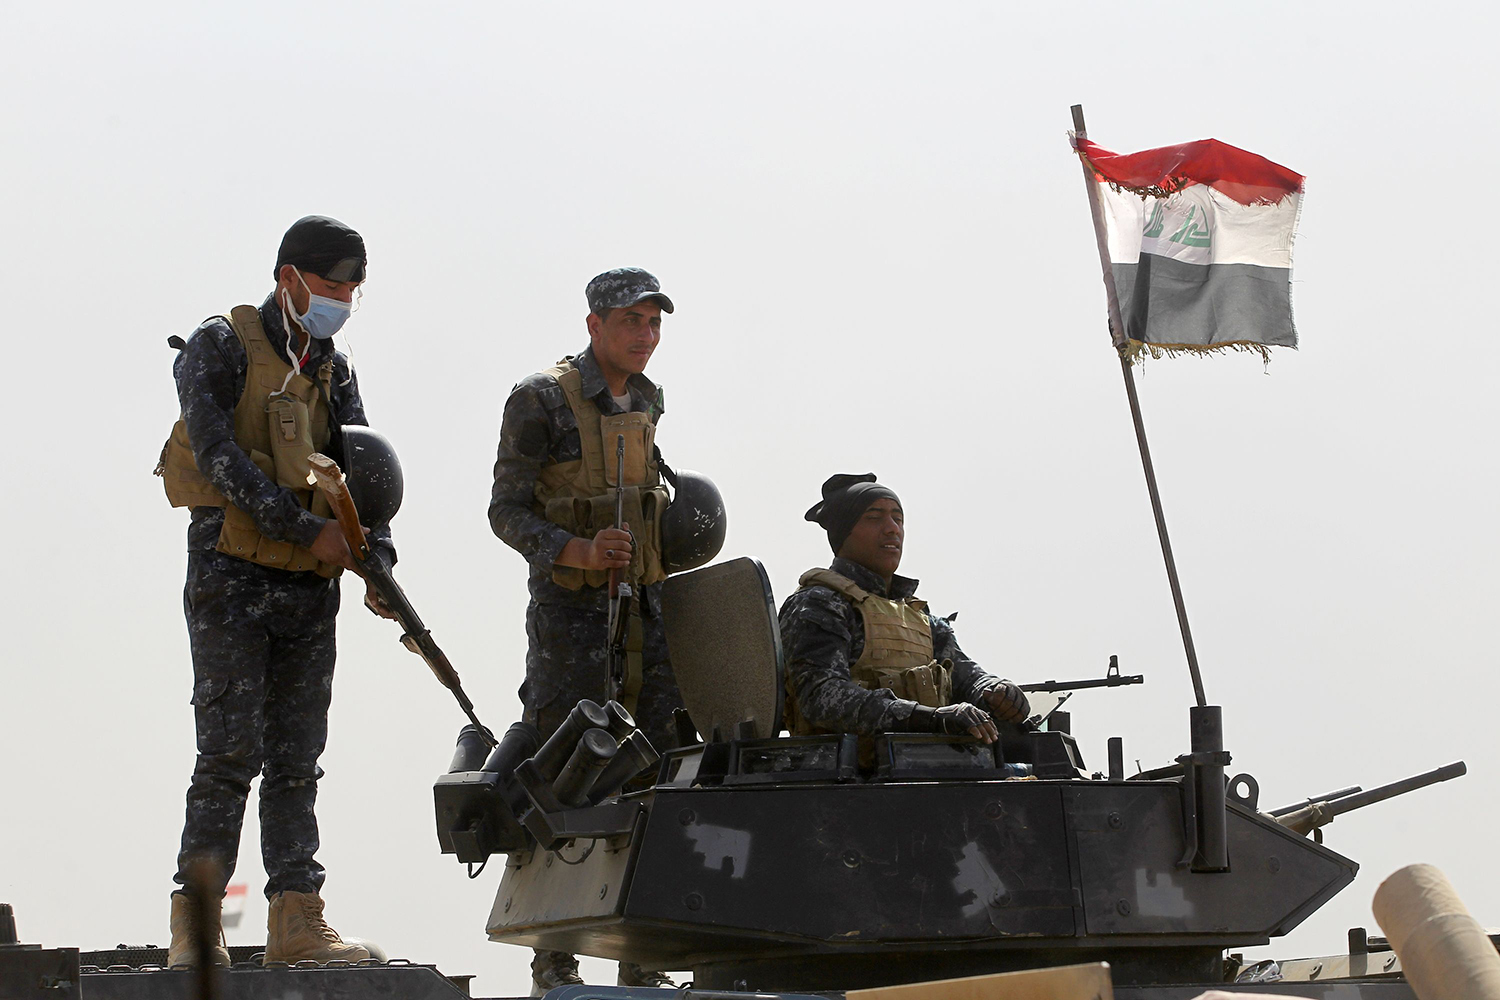 Iraqi forces hold a position on October 17, 2016 in the area of al-Shurah, some 45 kms south of Mosul, as they advance towards the city to retake it from the Islamic State (IS) group jihadists. Some 30,000 federal forces are leading the offensive, backed by air and ground support from a 60-nation US-led coalition, in what is expected to be a long and difficult assault on IS's last major Iraqi stronghold. / AFP PHOTO / AHMAD AL-RUBAYE / TT / kod 444